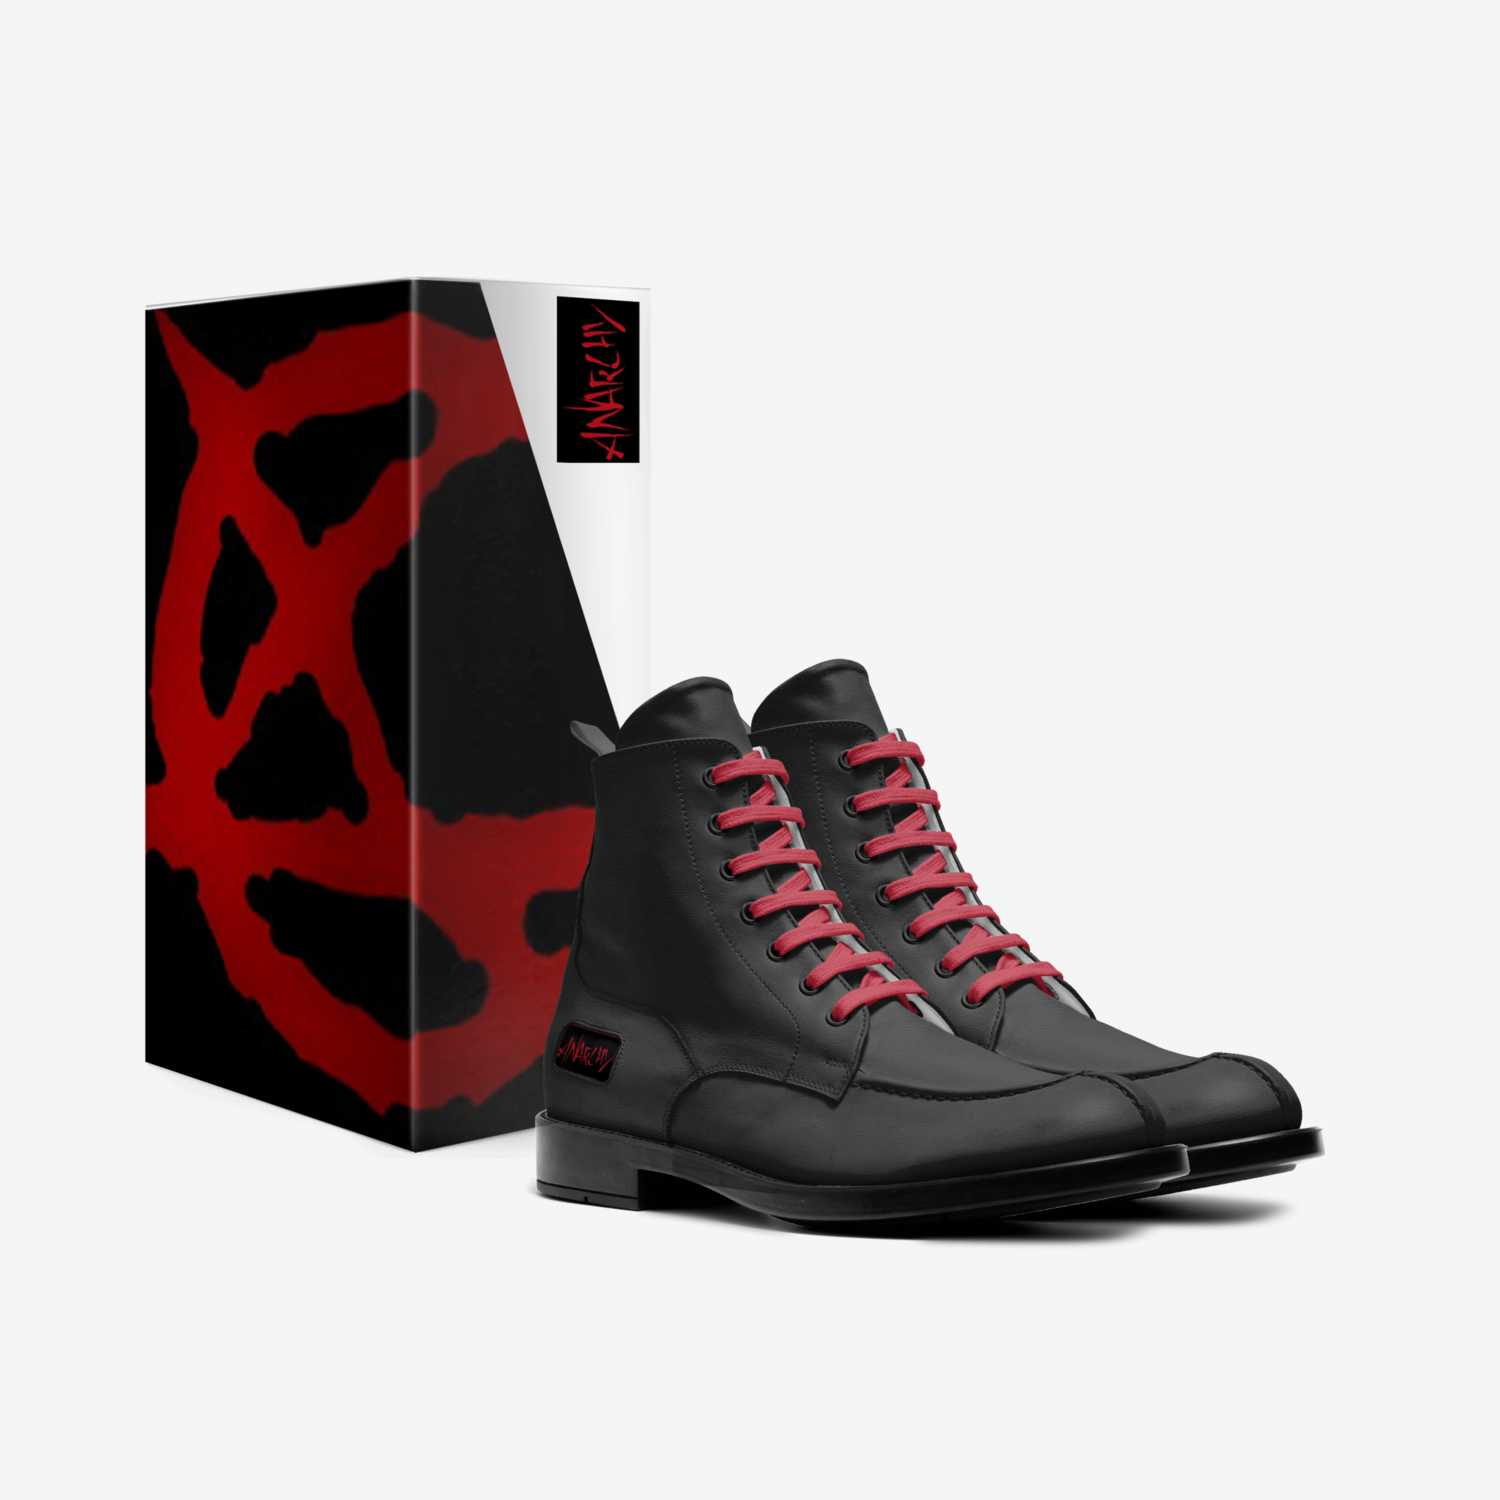 Anarchy custom made in Italy shoes by Aaron Turner   Box view